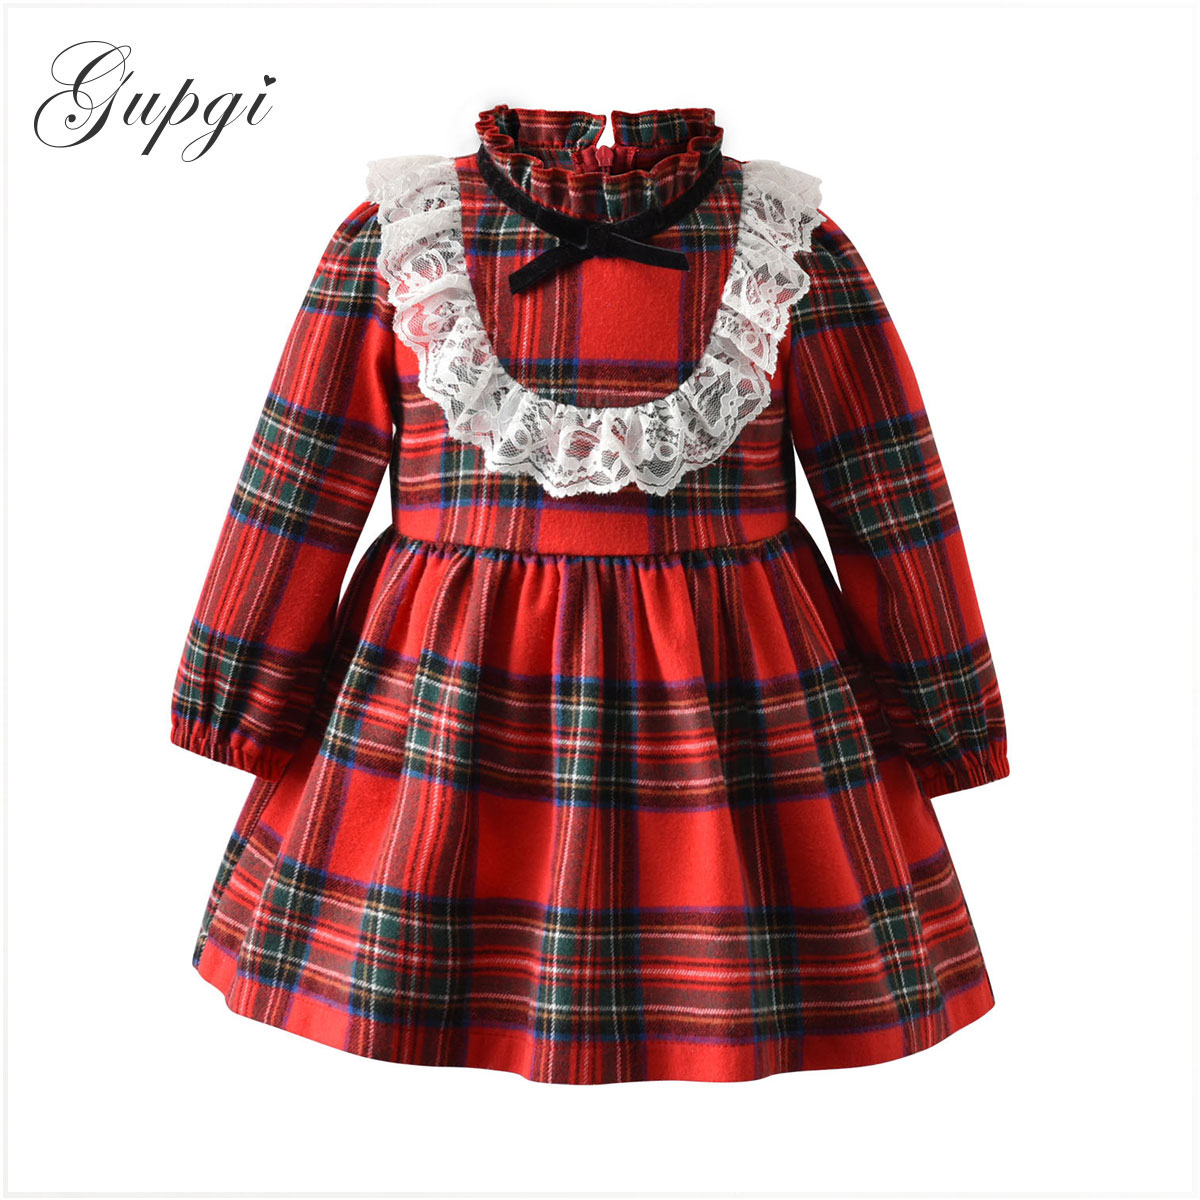 Gupgi 1-6Y <font><b>Christmas</b></font> Baby <font><b>Girls</b></font> <font><b>Dress</b></font> Toddler Baby Kid <font><b>Girls</b></font> Lace Ruffles <font><b>Red</b></font> Plaid Tutu <font><b>Dress</b></font> Xmas Party <font><b>Long</b></font> <font><b>Sleeve</b></font> <font><b>Dresses</b></font> image